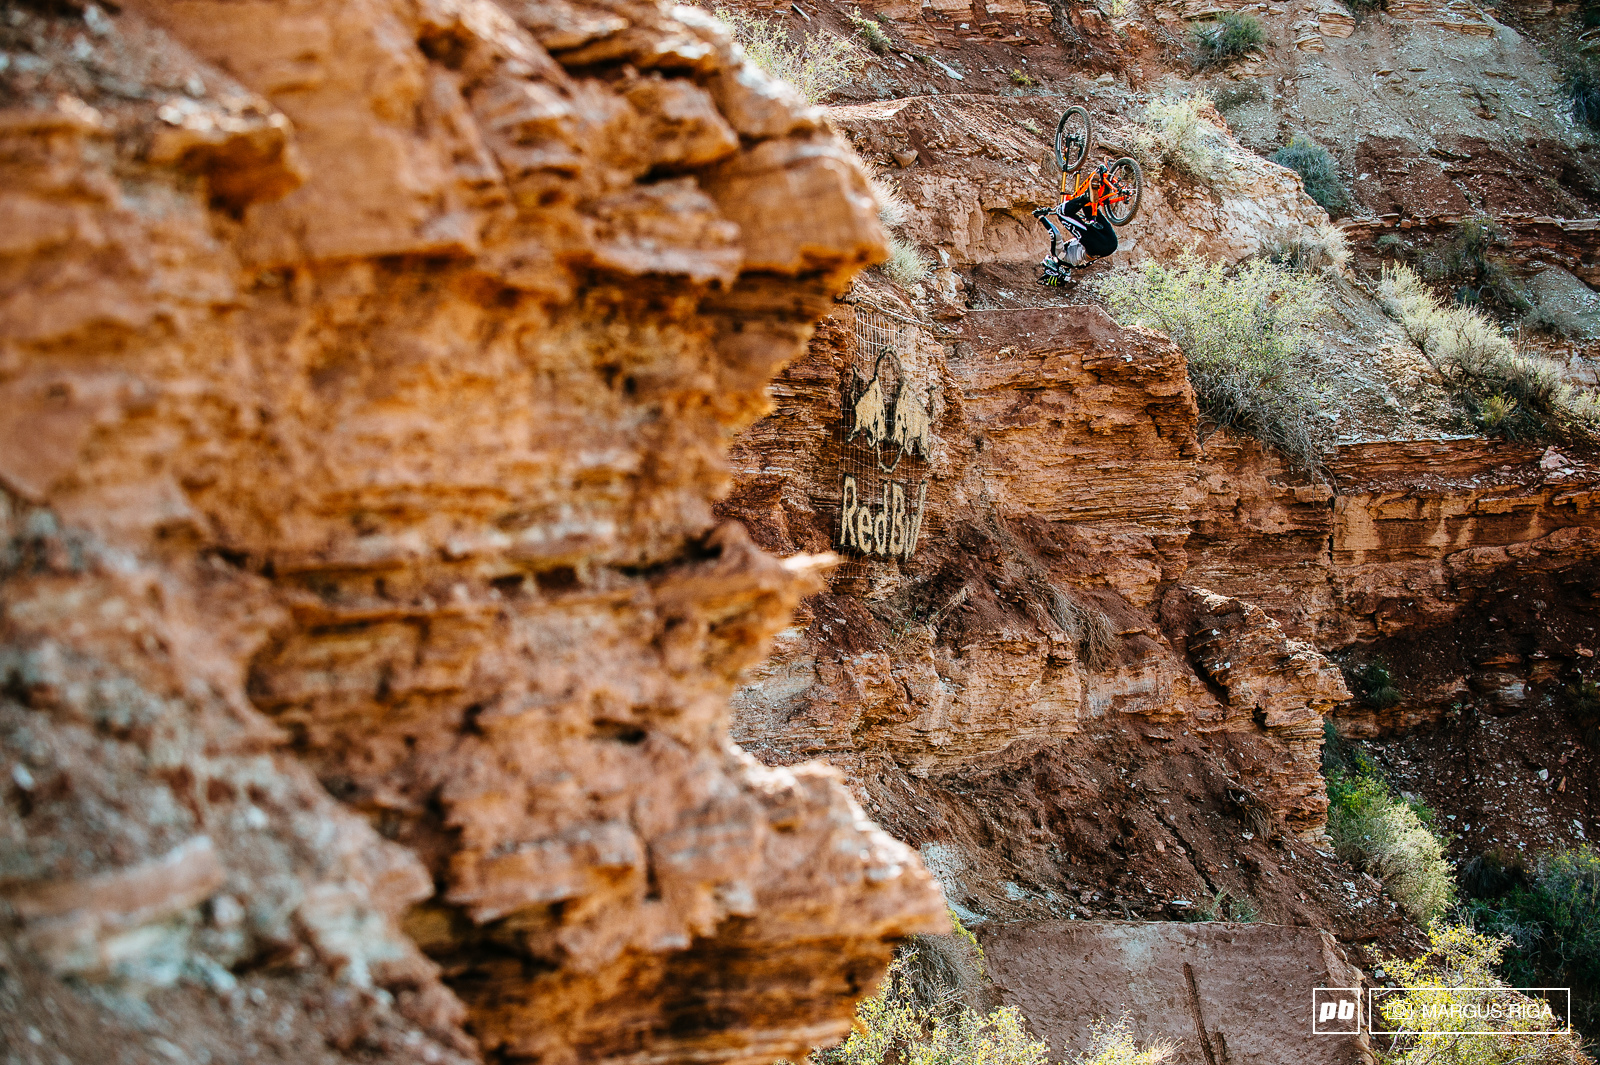 Brett Rheeder was more solid than the rocks he was riding on.